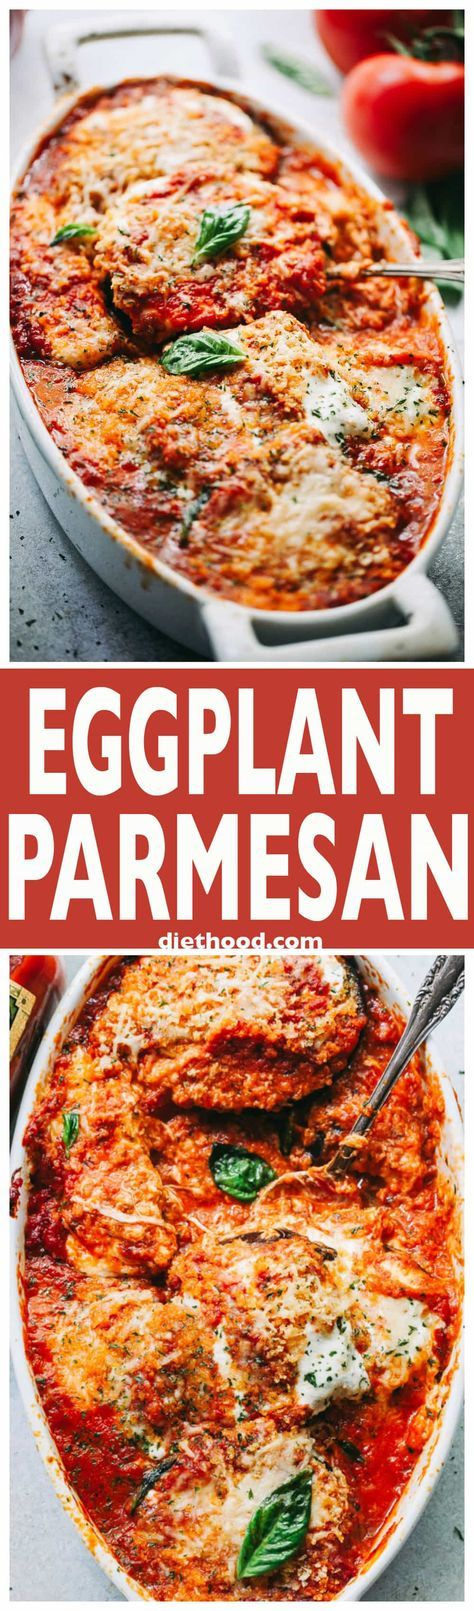 Eggplant Parmesan Recipe - A classic Italian baked Eggplant Parmesan prepared with eggplants, tomato sauce, and cheese! via @diethood